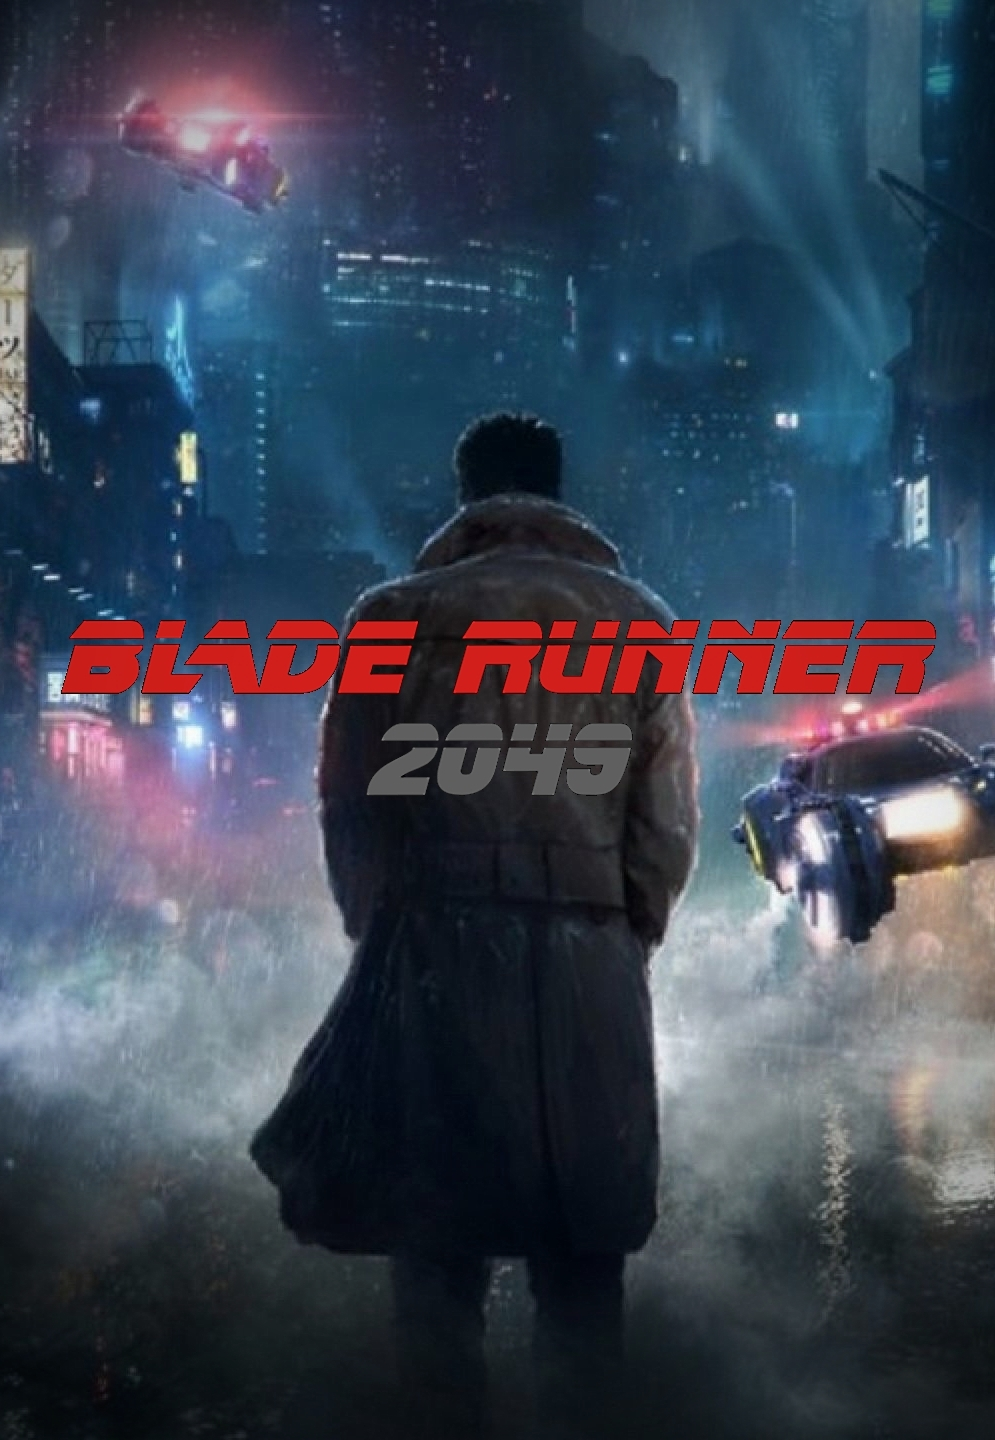 blade-runner-2049_film_false-poster_cyberpunk-italia